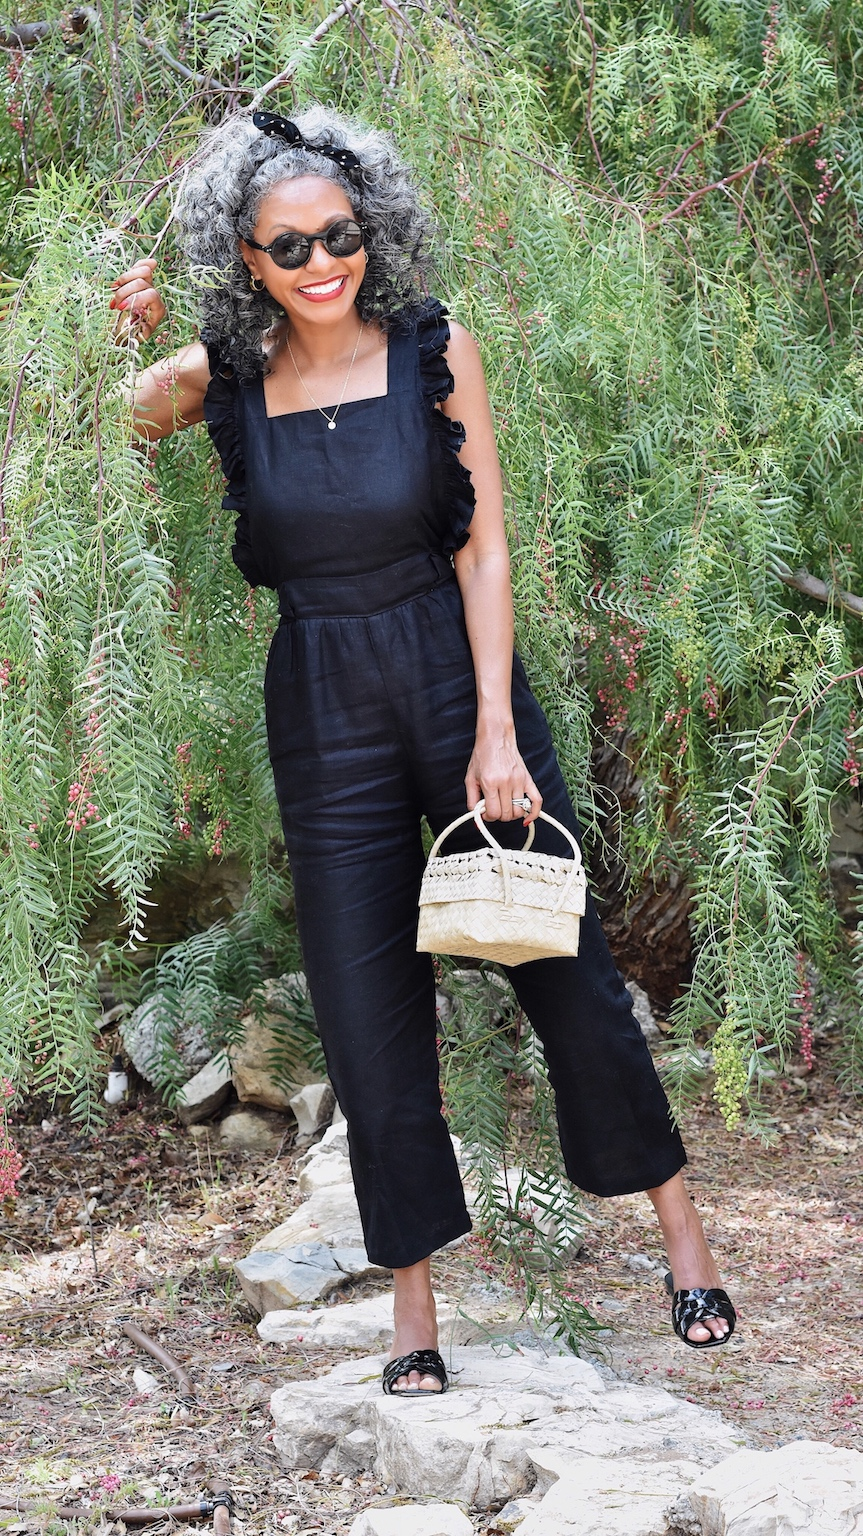 Black ruffled overalls for a chic picnic outfit // A Week Of Sophisticated Slow Fashion Outfits With Tennille Murphy From The Tennille Life on The Good Trade